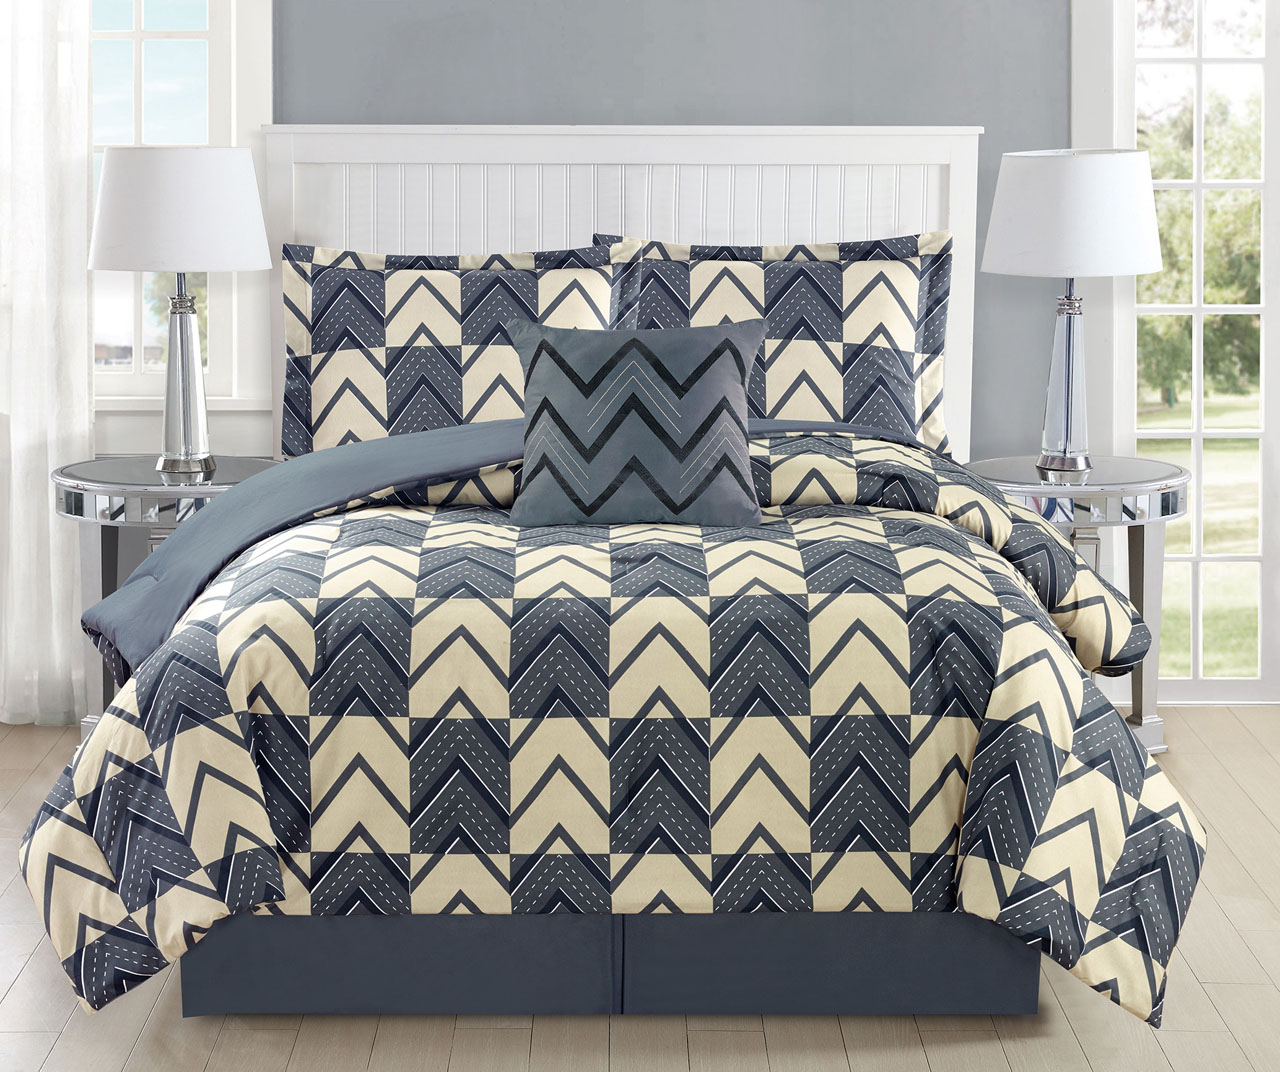 5 Piece Chevron Plaid Gray Ivory Comforter Set